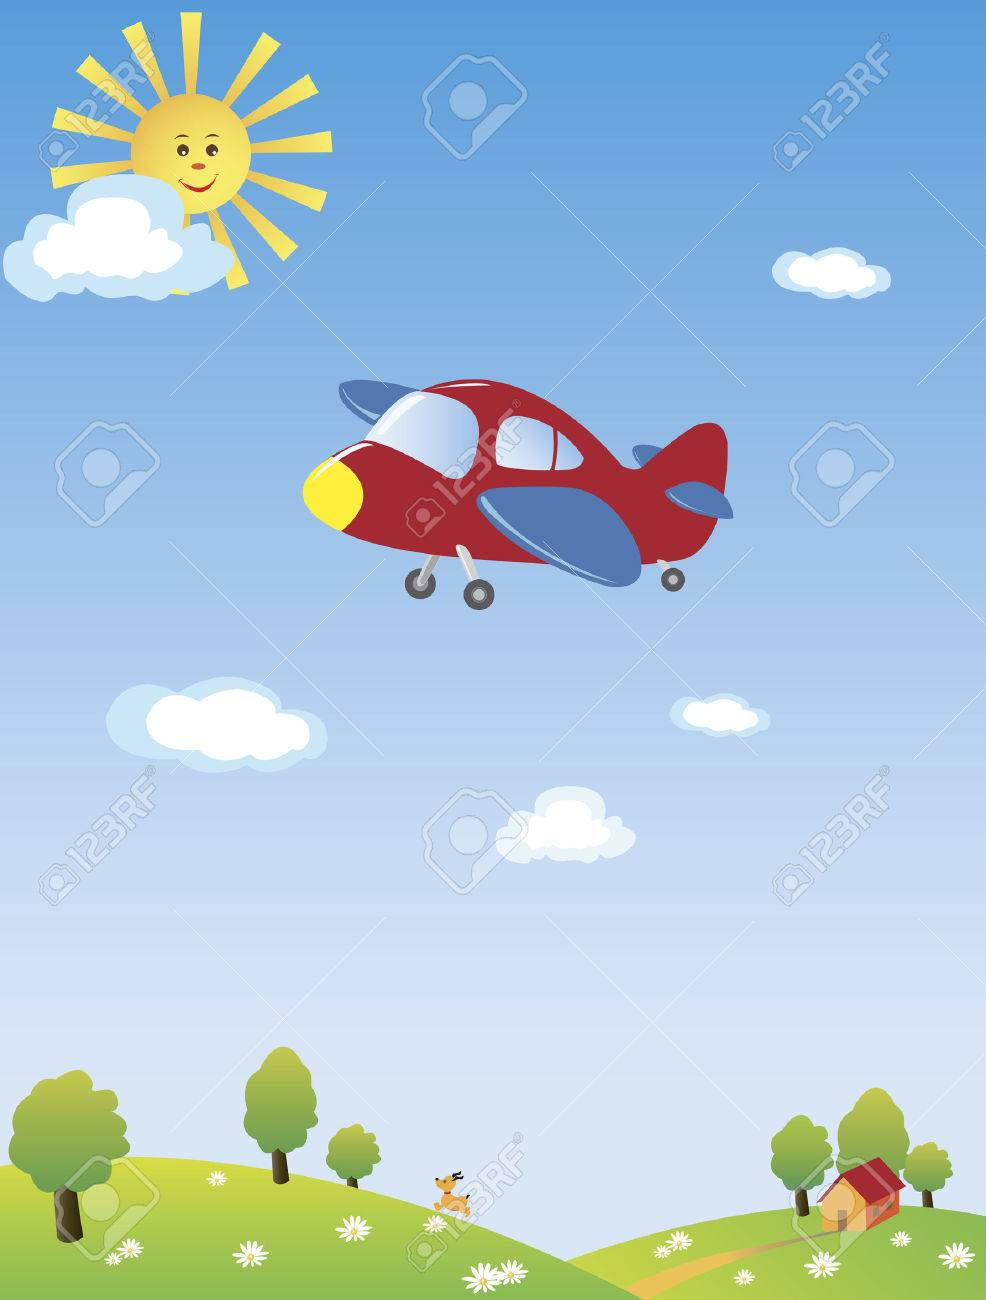 A drawing of an airplane flying high in the blue sky with the yellow sun and blue clouds, a dog running underneath on the hill with green trees and a small house. Stock Vector - 4189209